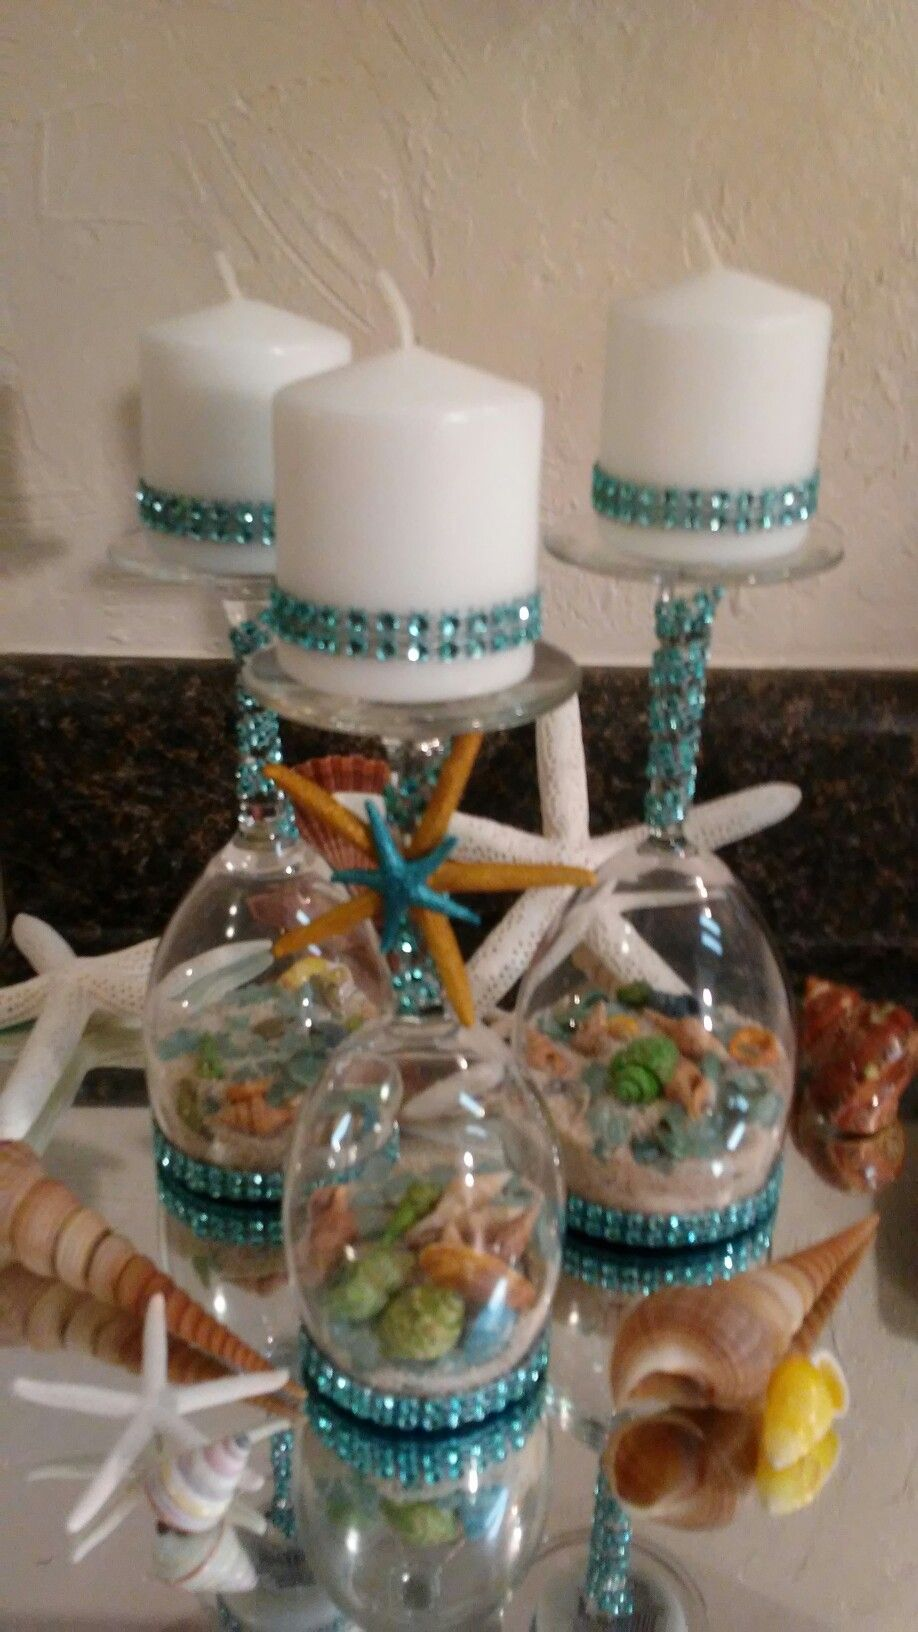 Upside down wine glass candle holders. Lots of shells